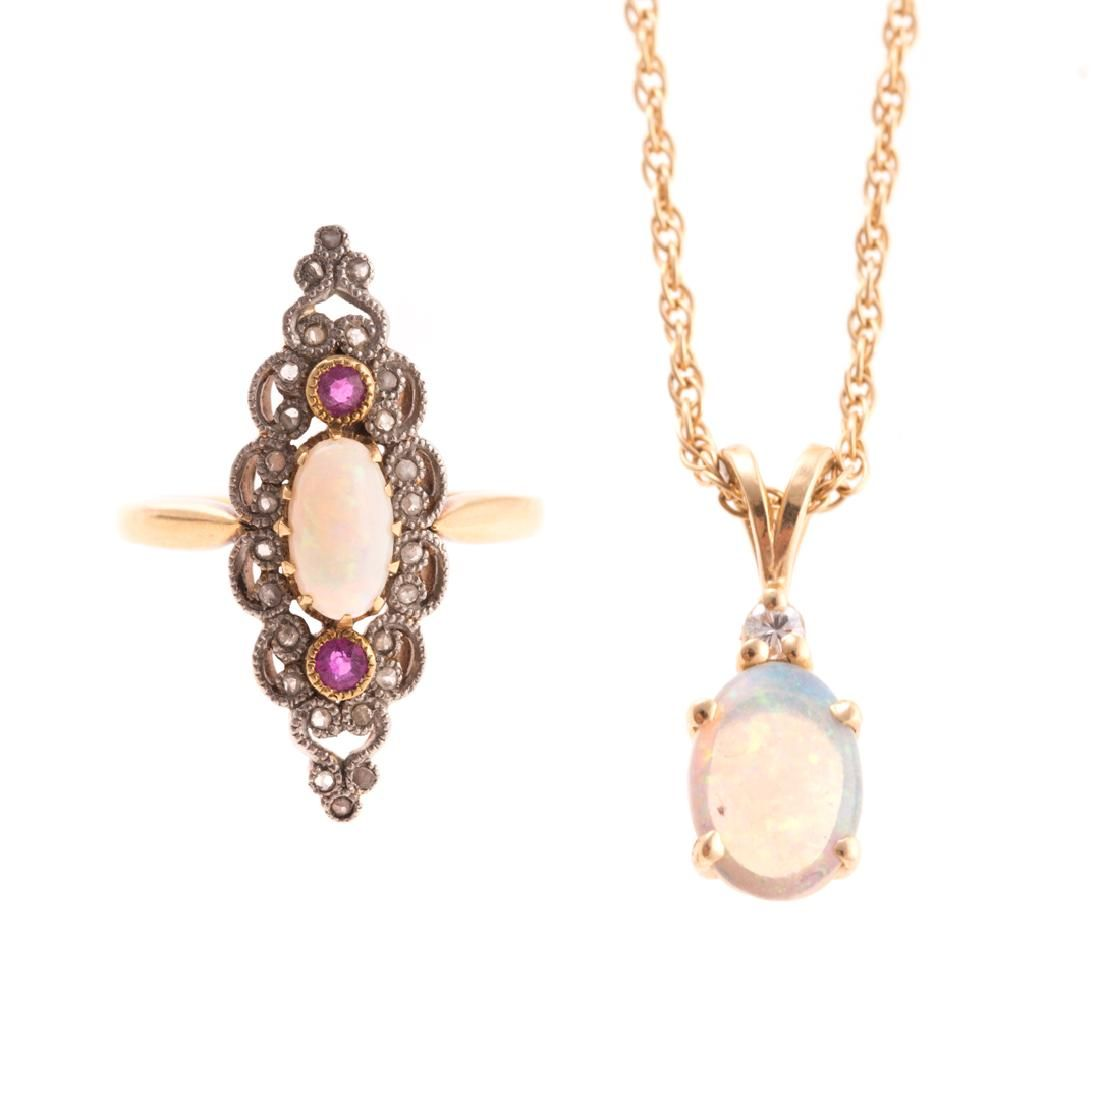 A Lady's 14K Opal & Diamond Ring and Pendant